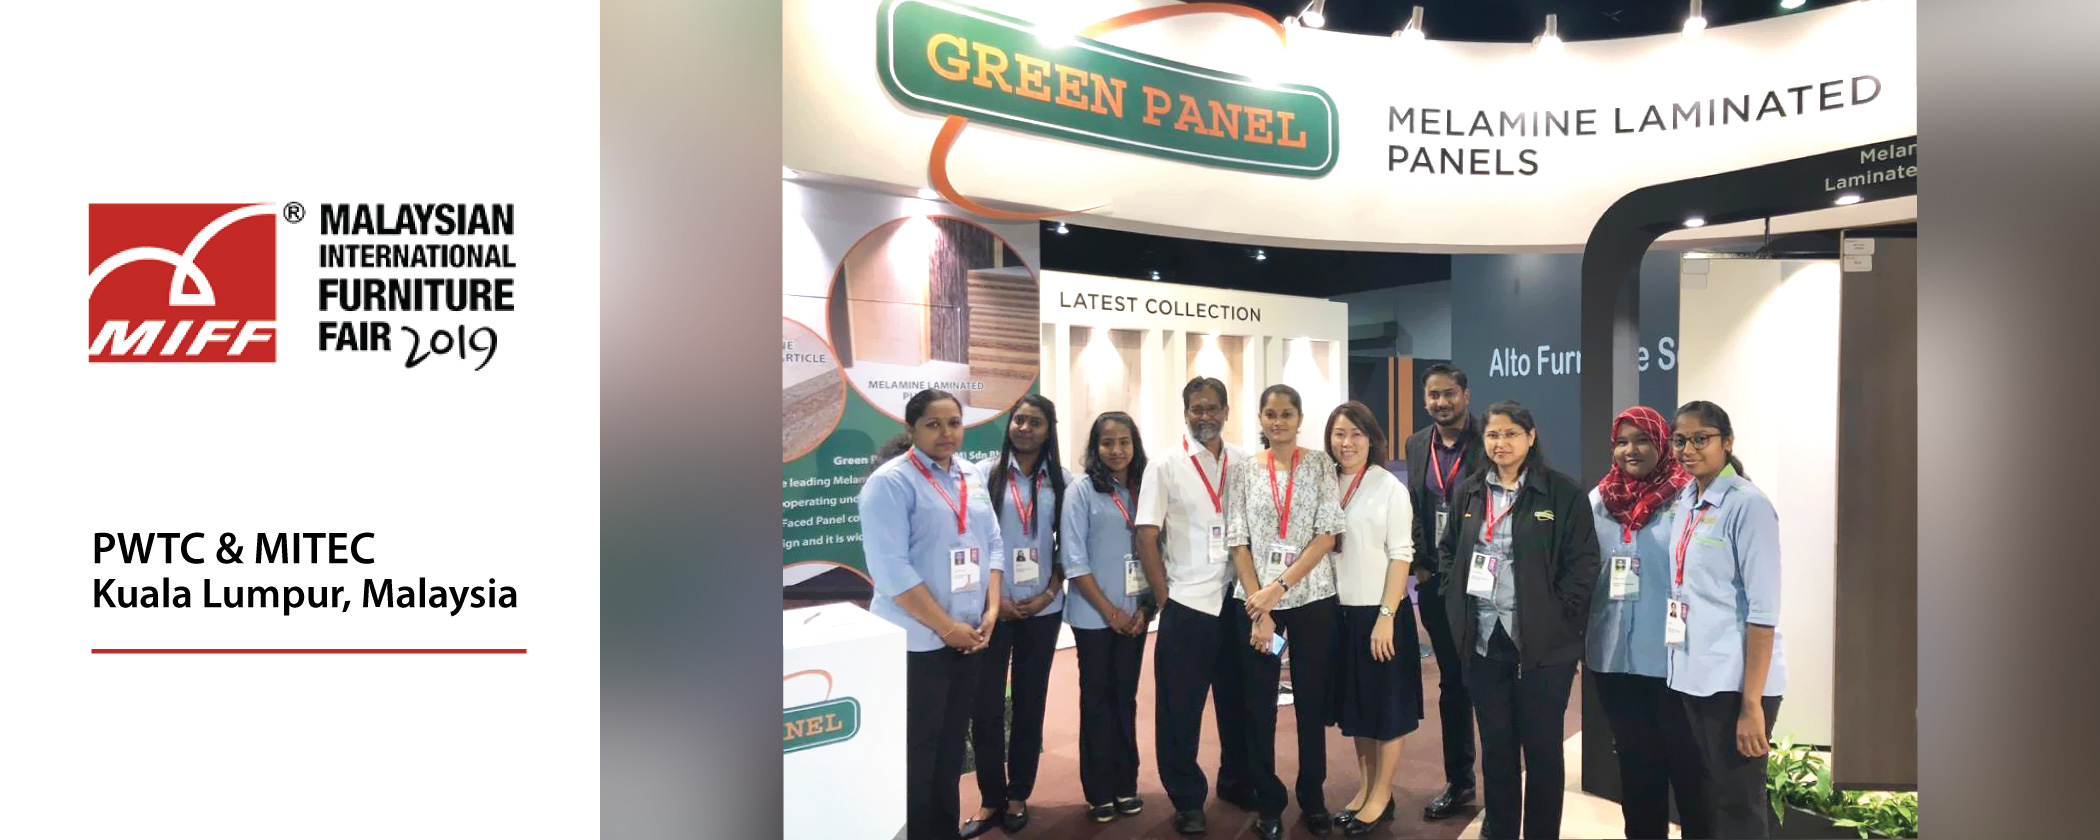 Green Panel Products